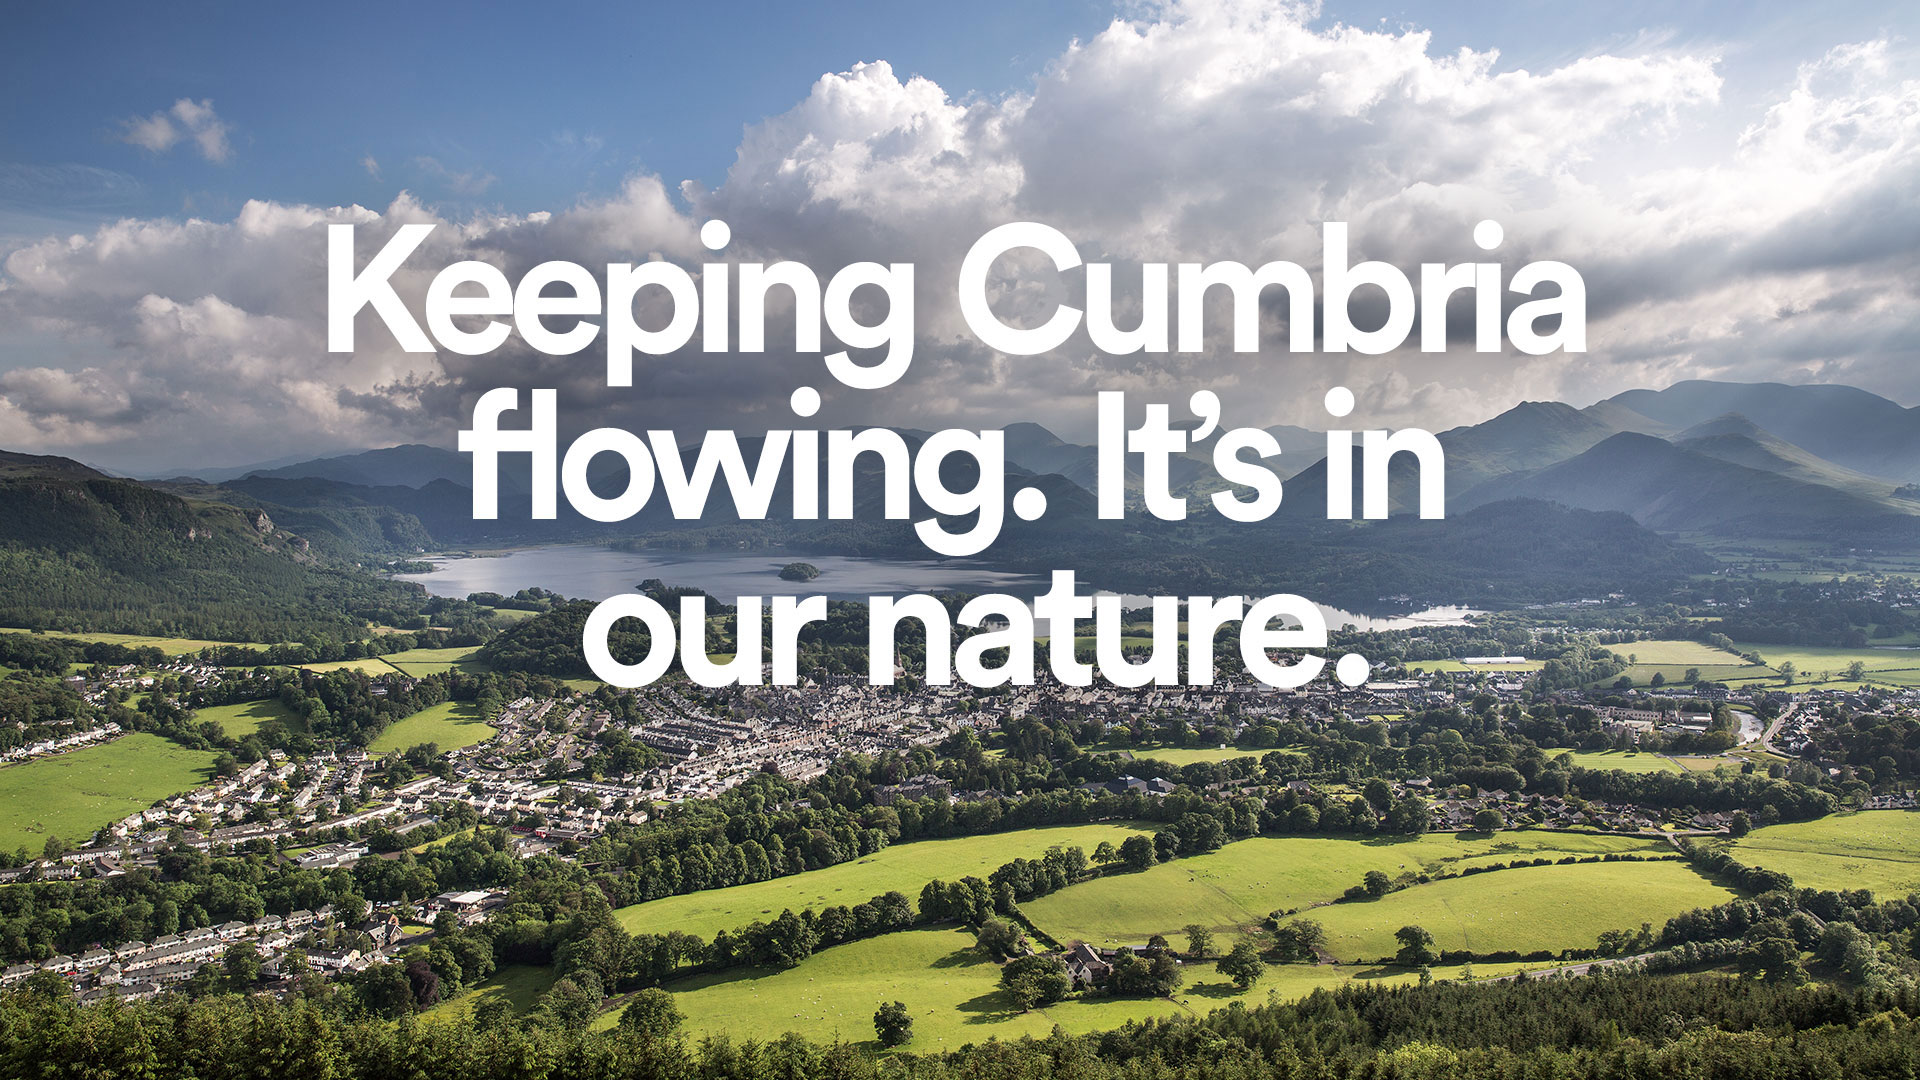 West Cumbria Welcome